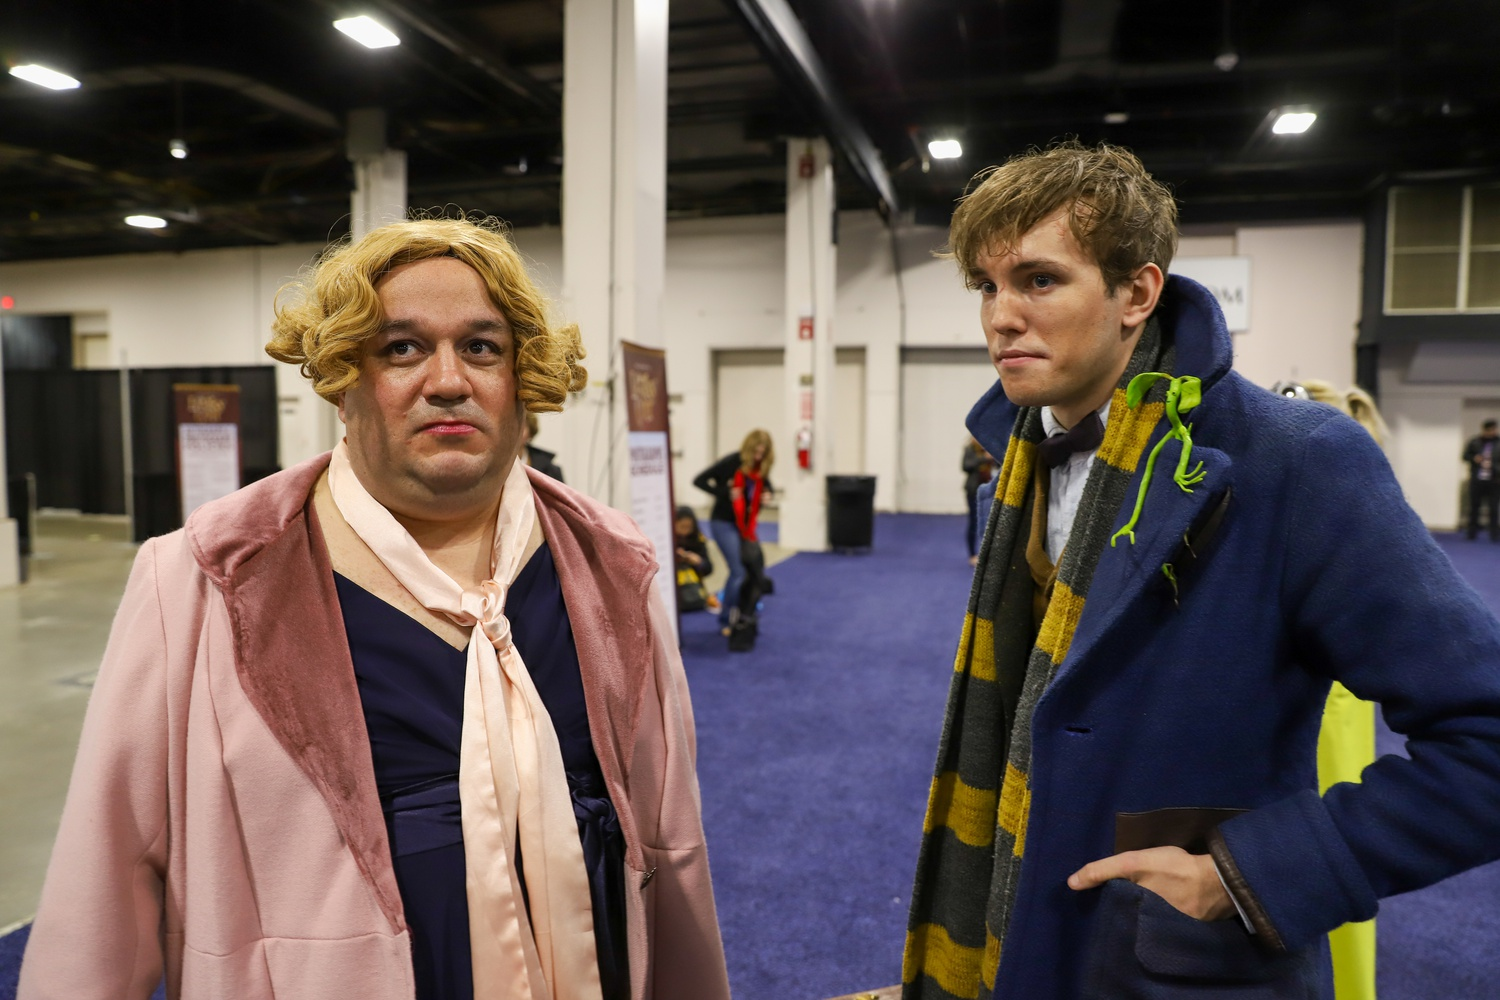 """Dank G. Marletto and Jay McDougall, cosplaying as Queenie Goldstein and Newt Scamander, have attended numerous LeakyCon over the past few years, Marletto noting """"Harry Potter is home. It's where I found that I just belong""""."""